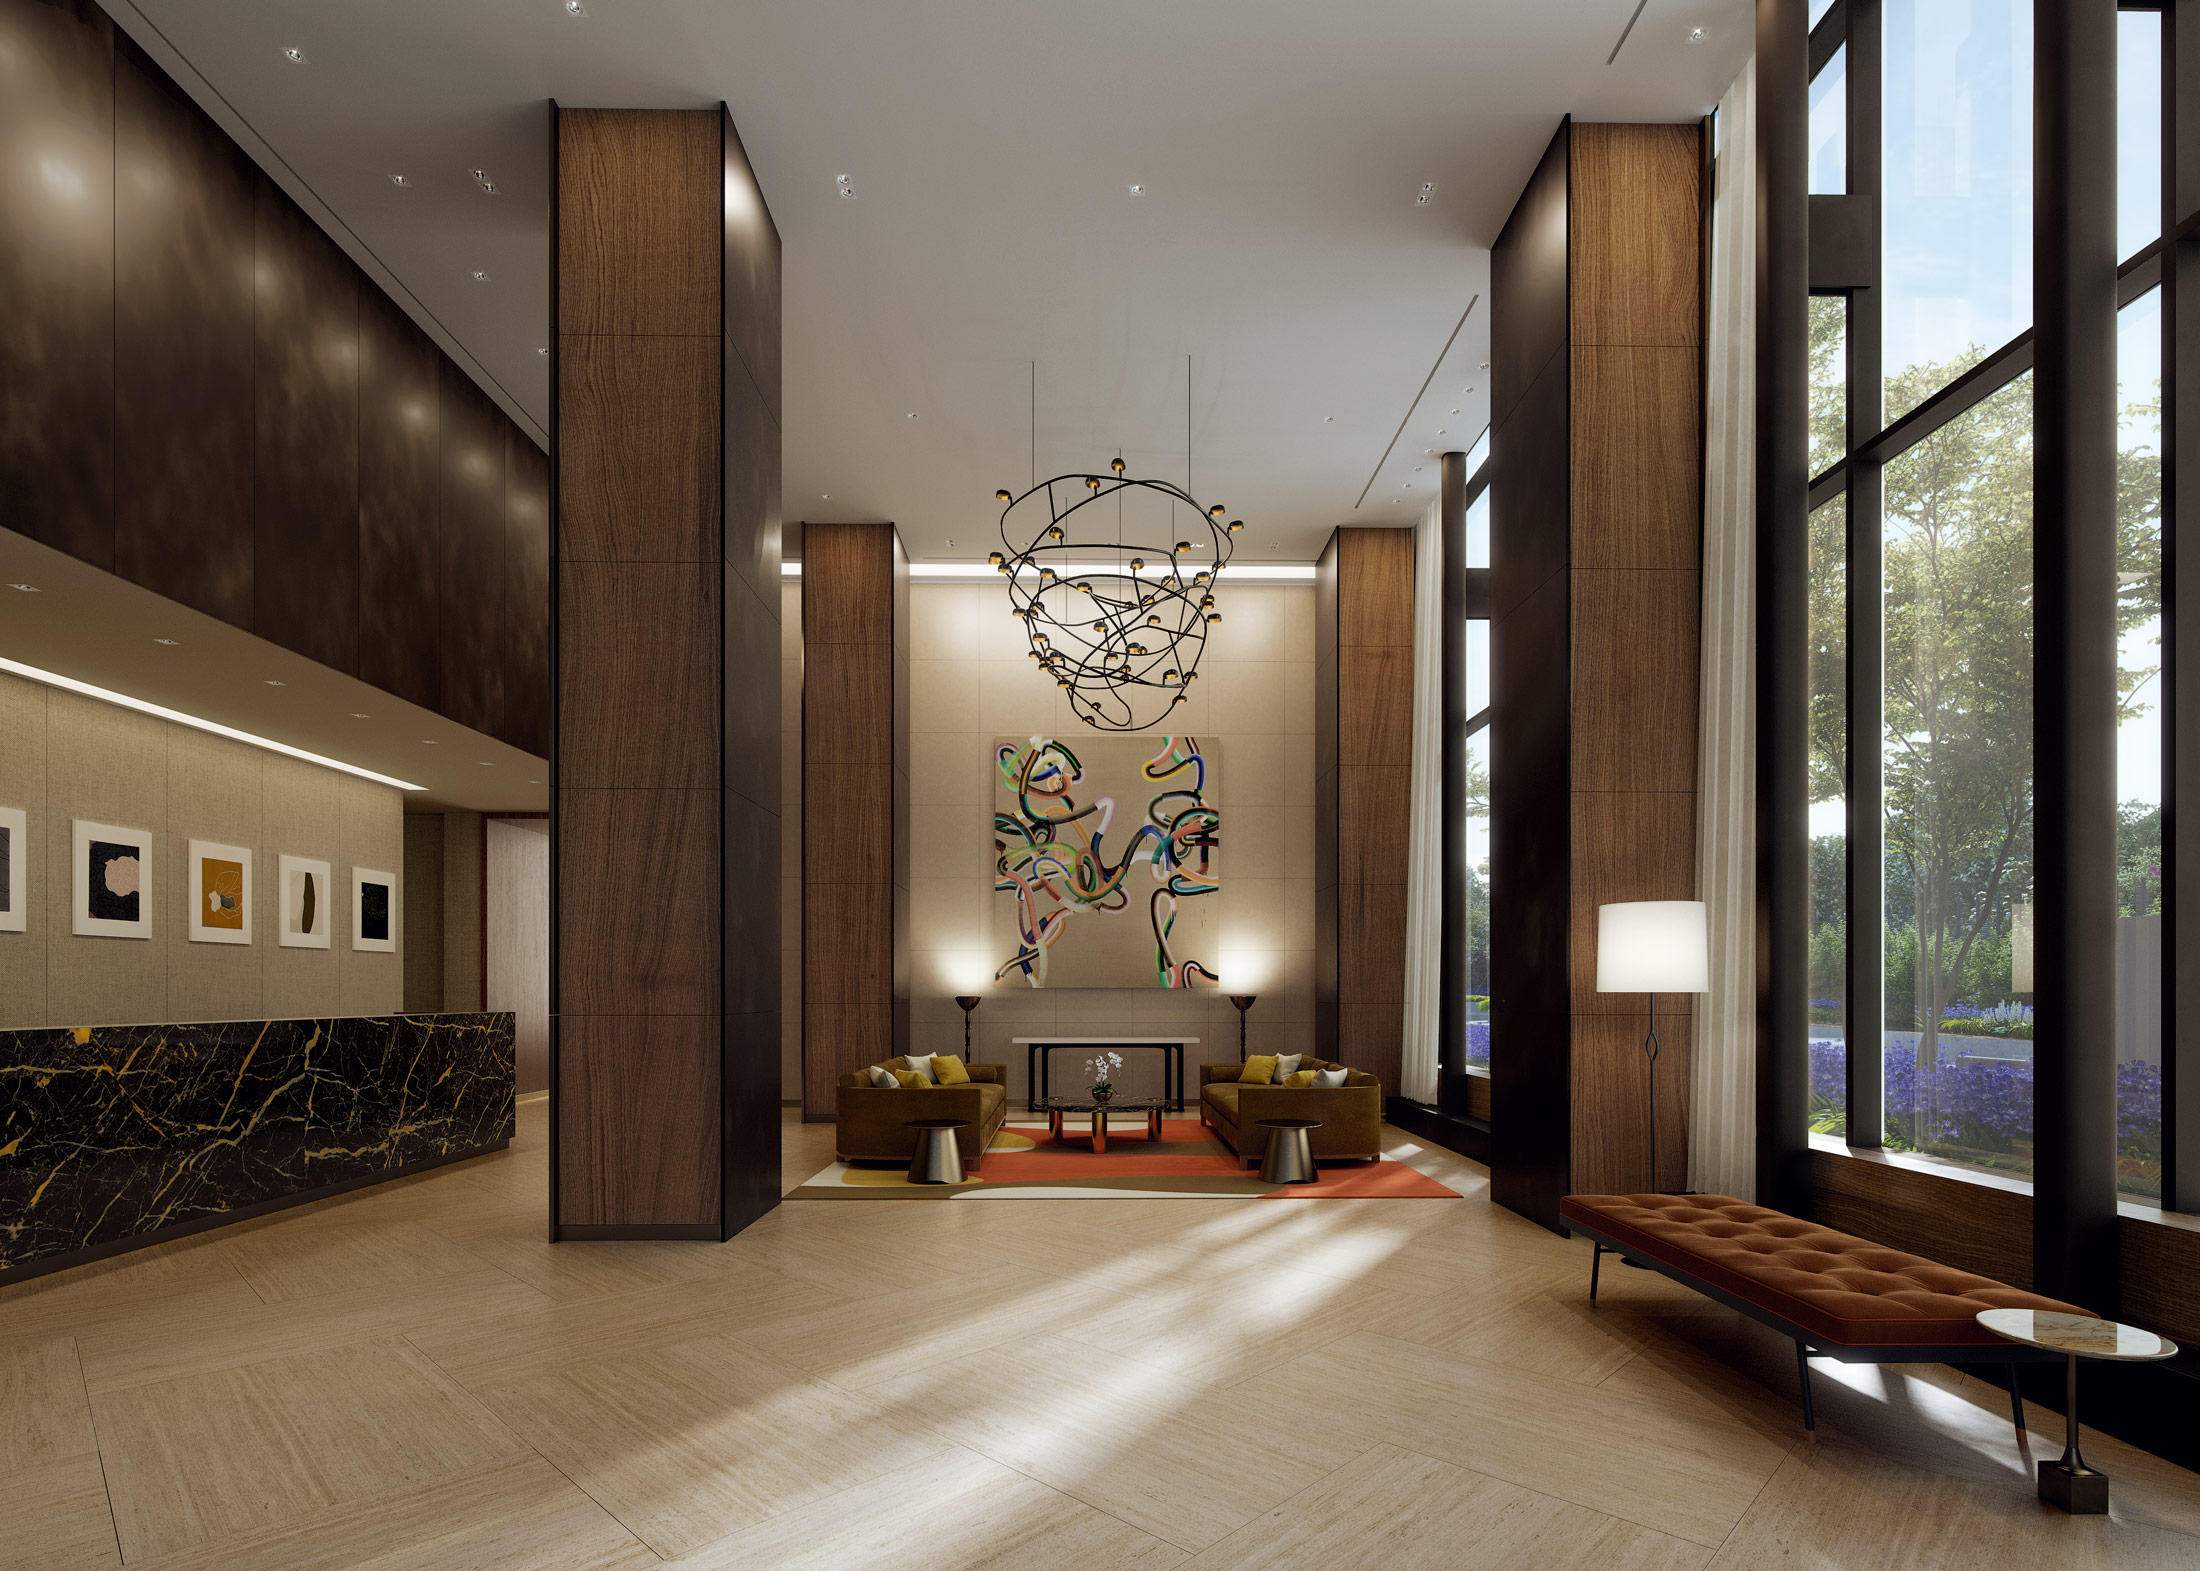 Architectural Rendering of the lobby of The Easton project located on the Upper East Side, New York City